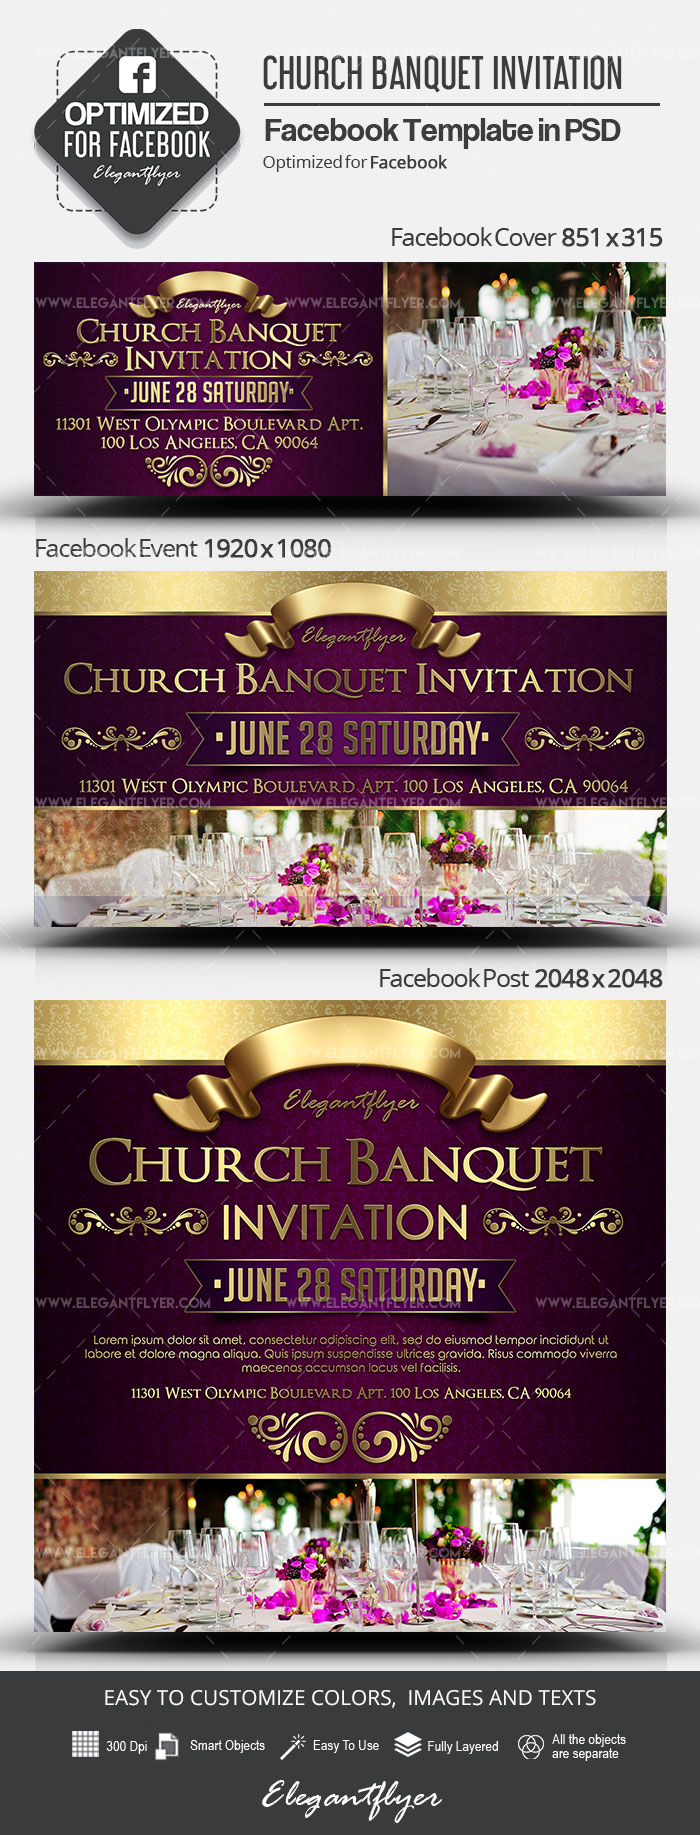 Church Banquet Invitation – Facebook Cover Template in PSD + Post + Event cover